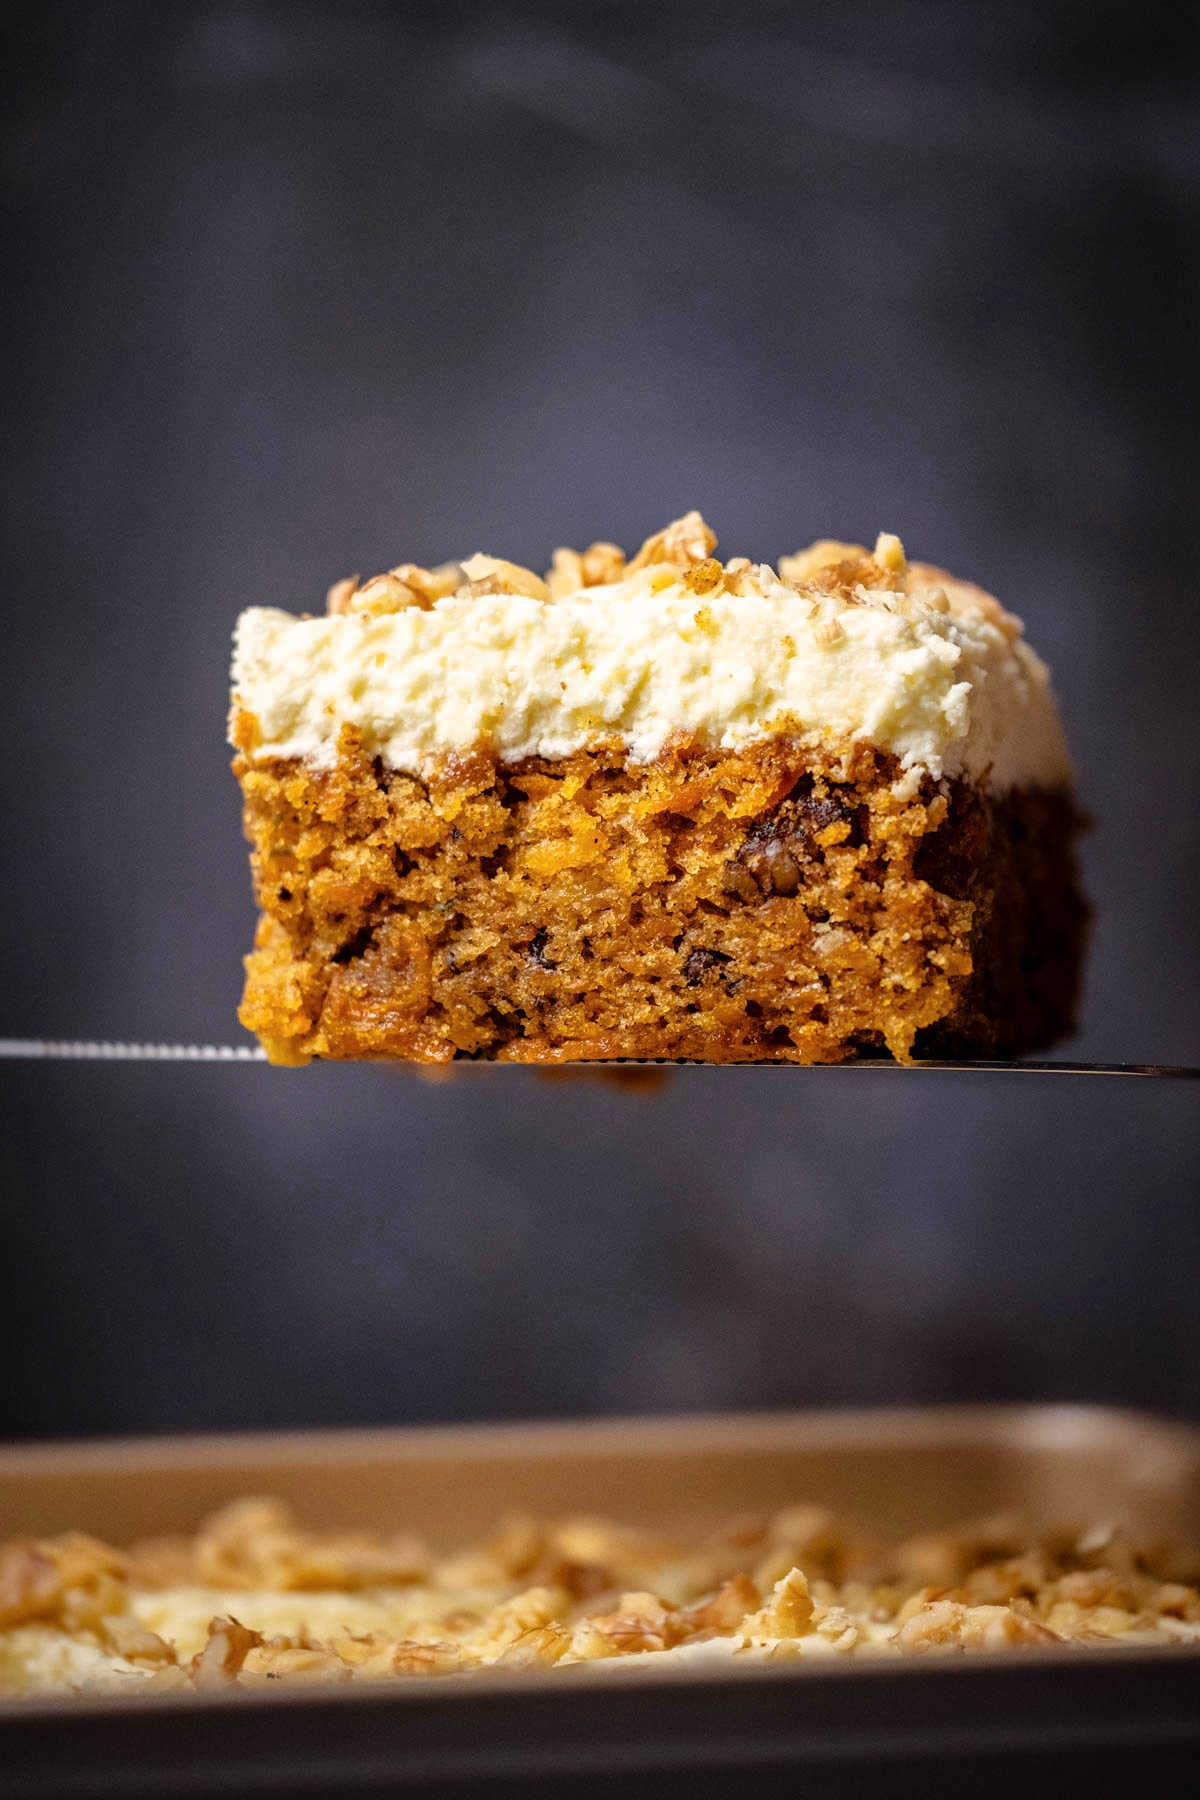 Slice of carrot cake on a cake lifter.